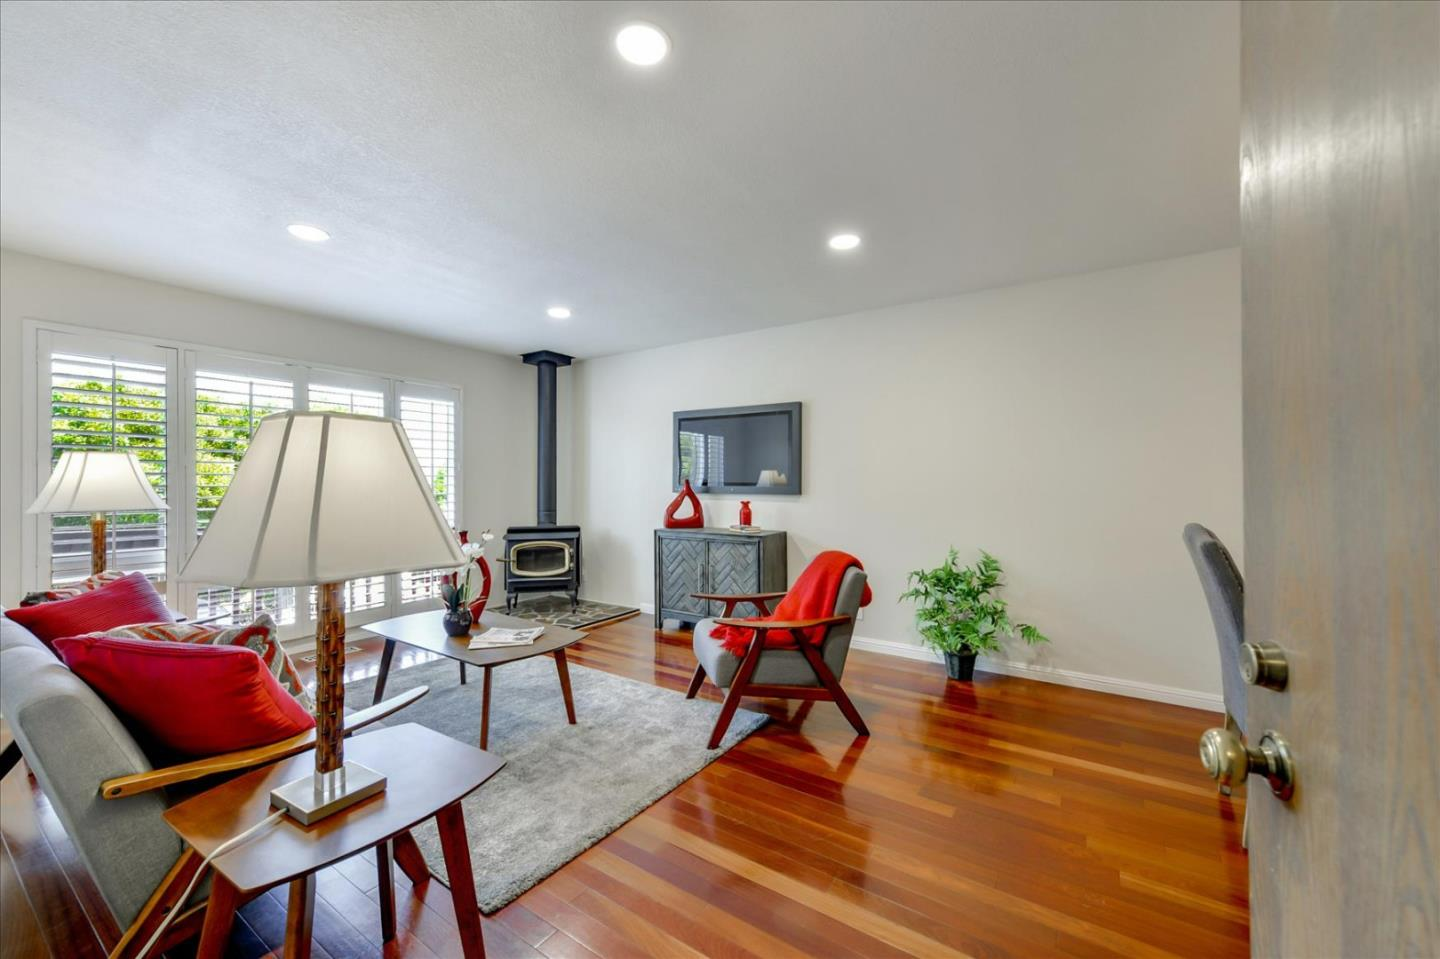 This gorgeous 2 bedrooms,1.5 bath townhouse style condo located in desirable SSF. Remodeled with meticulous attention to every detail.The main level boasts an open living/dining rm combo,custom plantation shutters,hdwd flrs, wd burning fp (only one in complex),recessed lights,freshly painted interior & counter that opens to kitchen.The kitchen boasts hdwd flrs,custom wood cabinets,quartz counters w/moroccan tile backsplash,microwave oven, stainless refrigerator,oversize sink & custom window covering.The spacious patio is ideal for family cookouts. Upstairs features a large main bedrm with city views,custom wood closet doors & newer carpet. The additional bedrm has ample closet space w/custom doors & view of green foliege.Also included are dble pane windows,w/w carpeting upstairs,new light fixtures,attached 1 car garage w/washer/dryer inside. Close to Genentech, Biotech Firms, Bart, Kaiser Hospital, SFO, San Francisco, Silicon Valley, Hwys 101 & 280. Open House Sun 8/1 1:30-4:00 p.m.